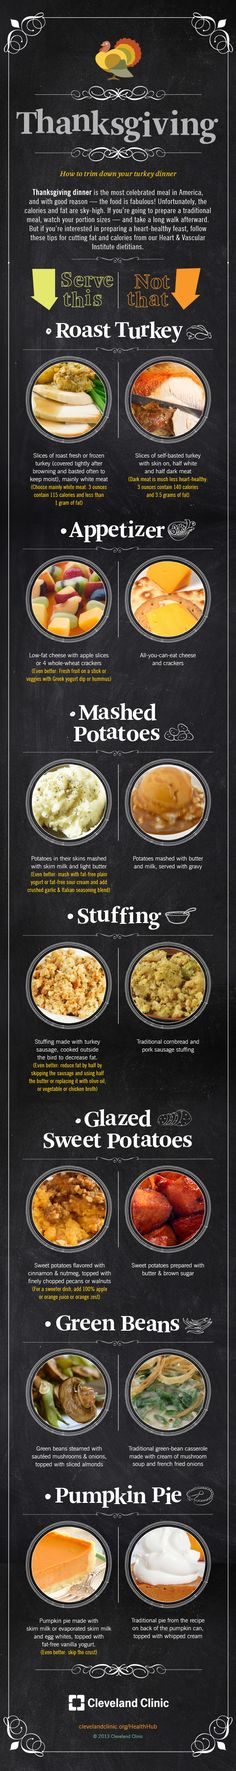 How to eat healthier on #Thanksgiving